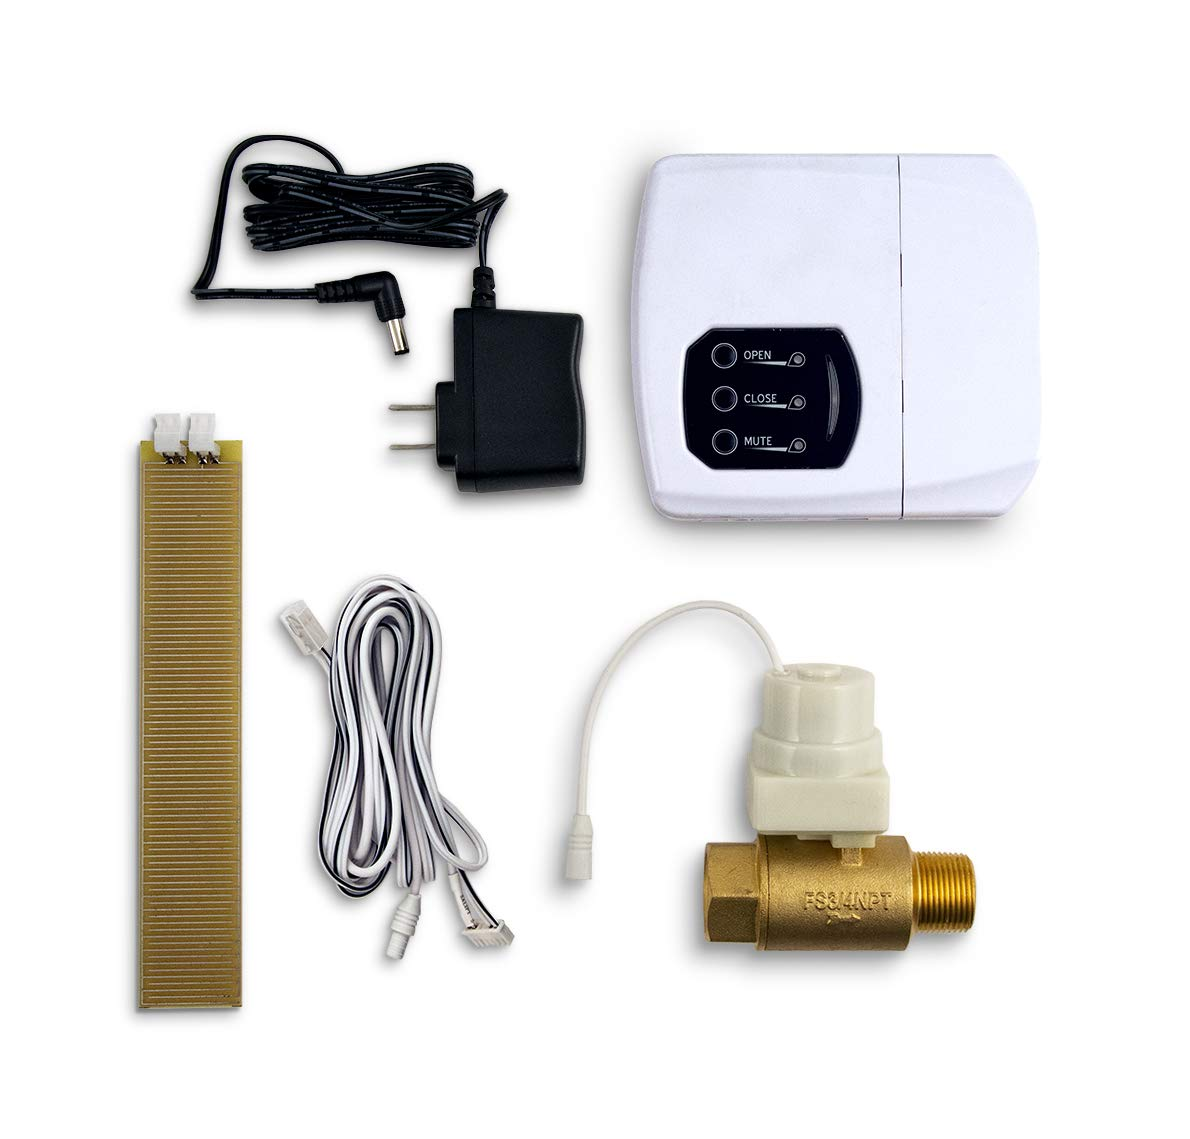 LeakSmart Automatic Leak Detection and Water Shut Off Kits- Protect Your Home from High Leak Risk Appliances (3/4'' Water Tank)